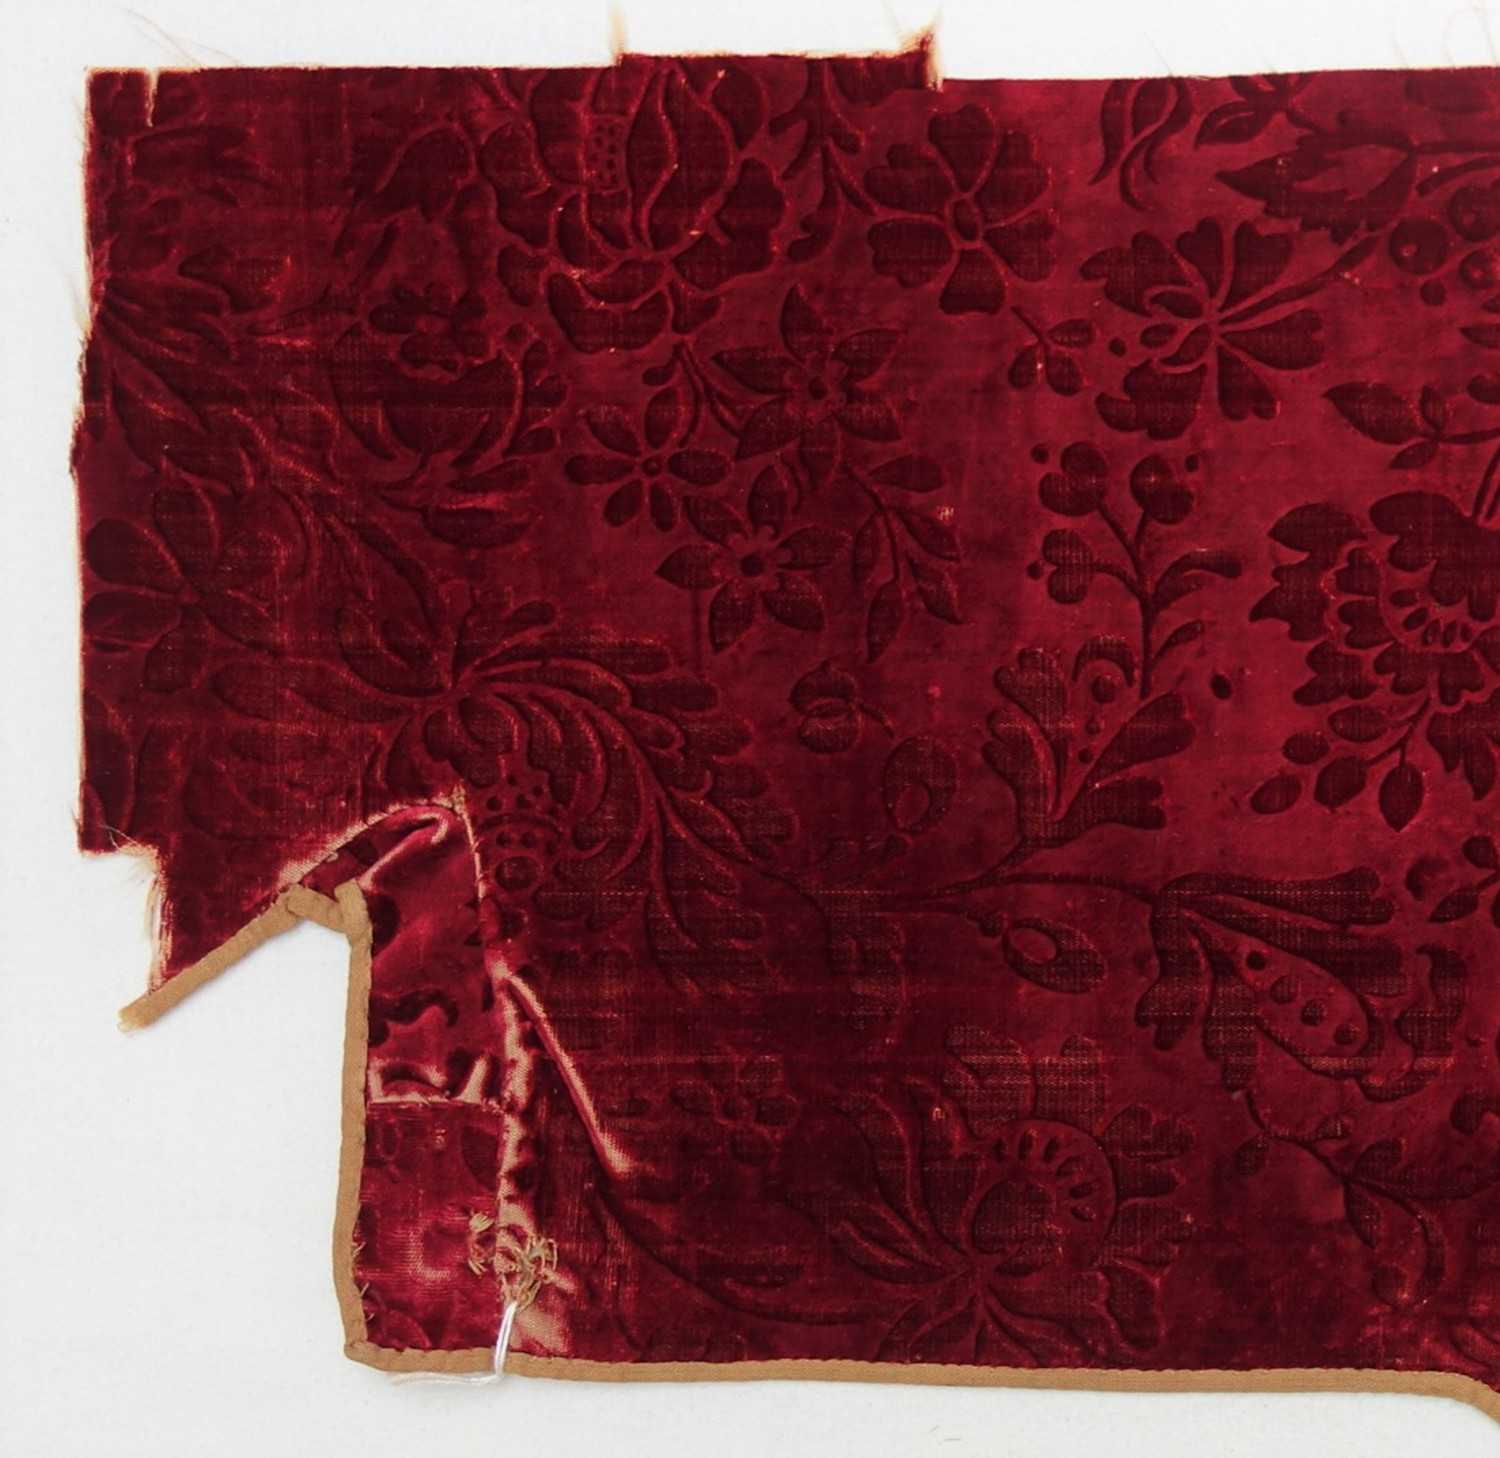 Voided velvet, cut and uncut pile (ciselé), satin ground, coloured with insect dye. Europe, 18th century (TRC 2011.0386).